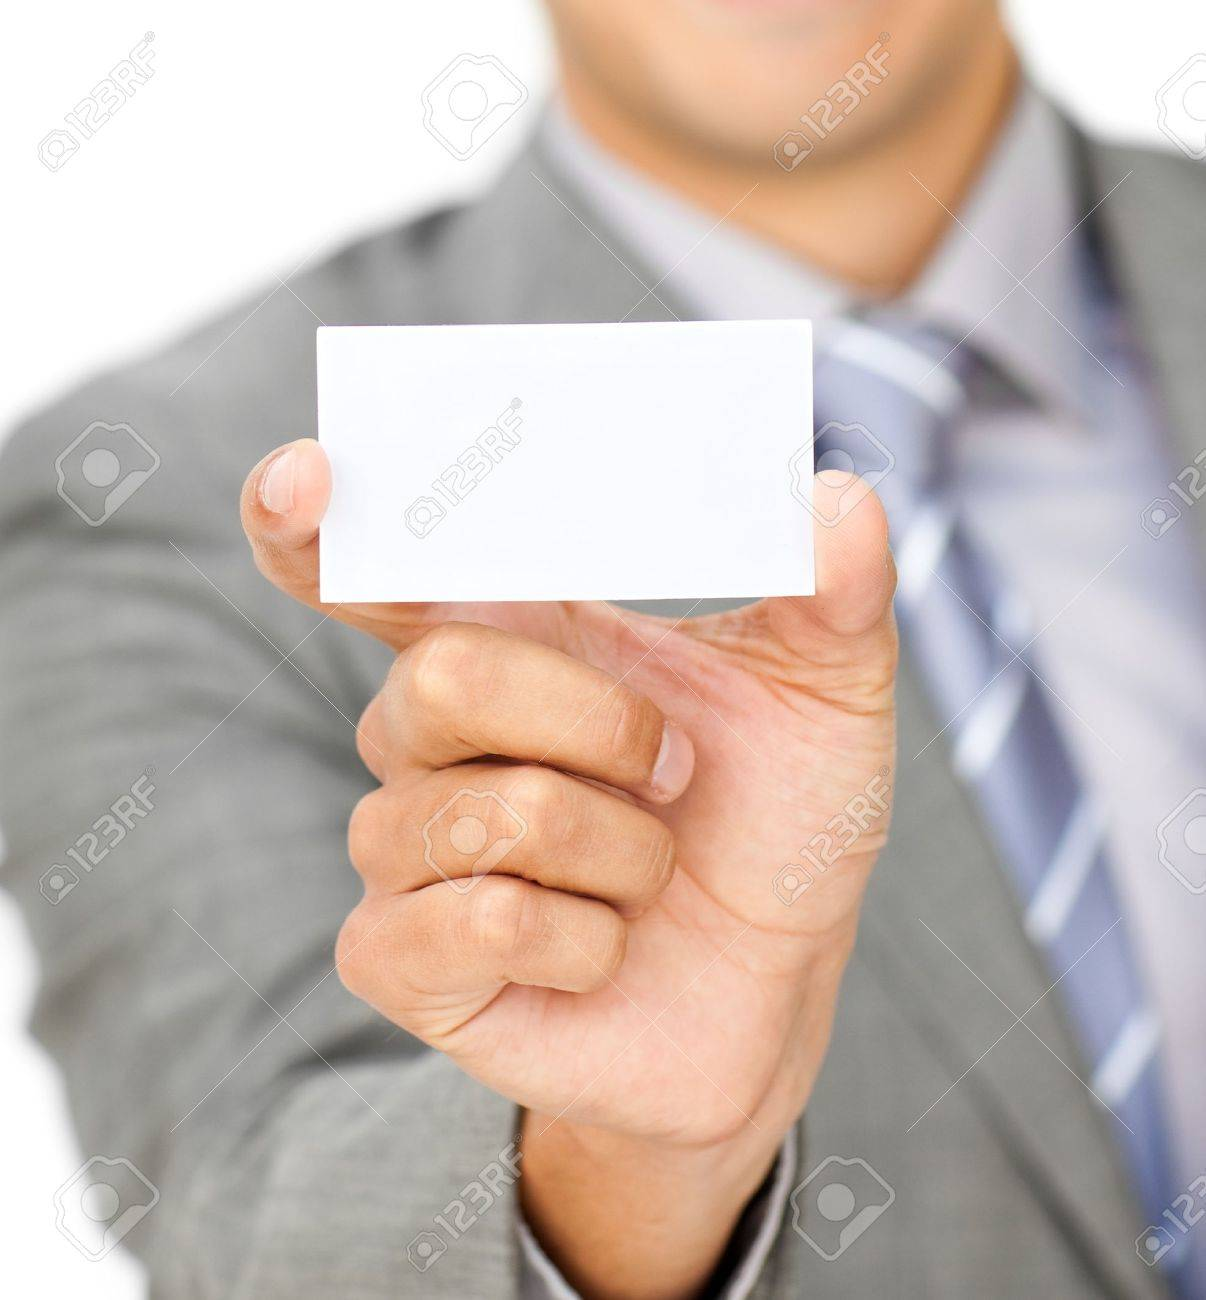 Focus on a white card Stock Photo - 10075415